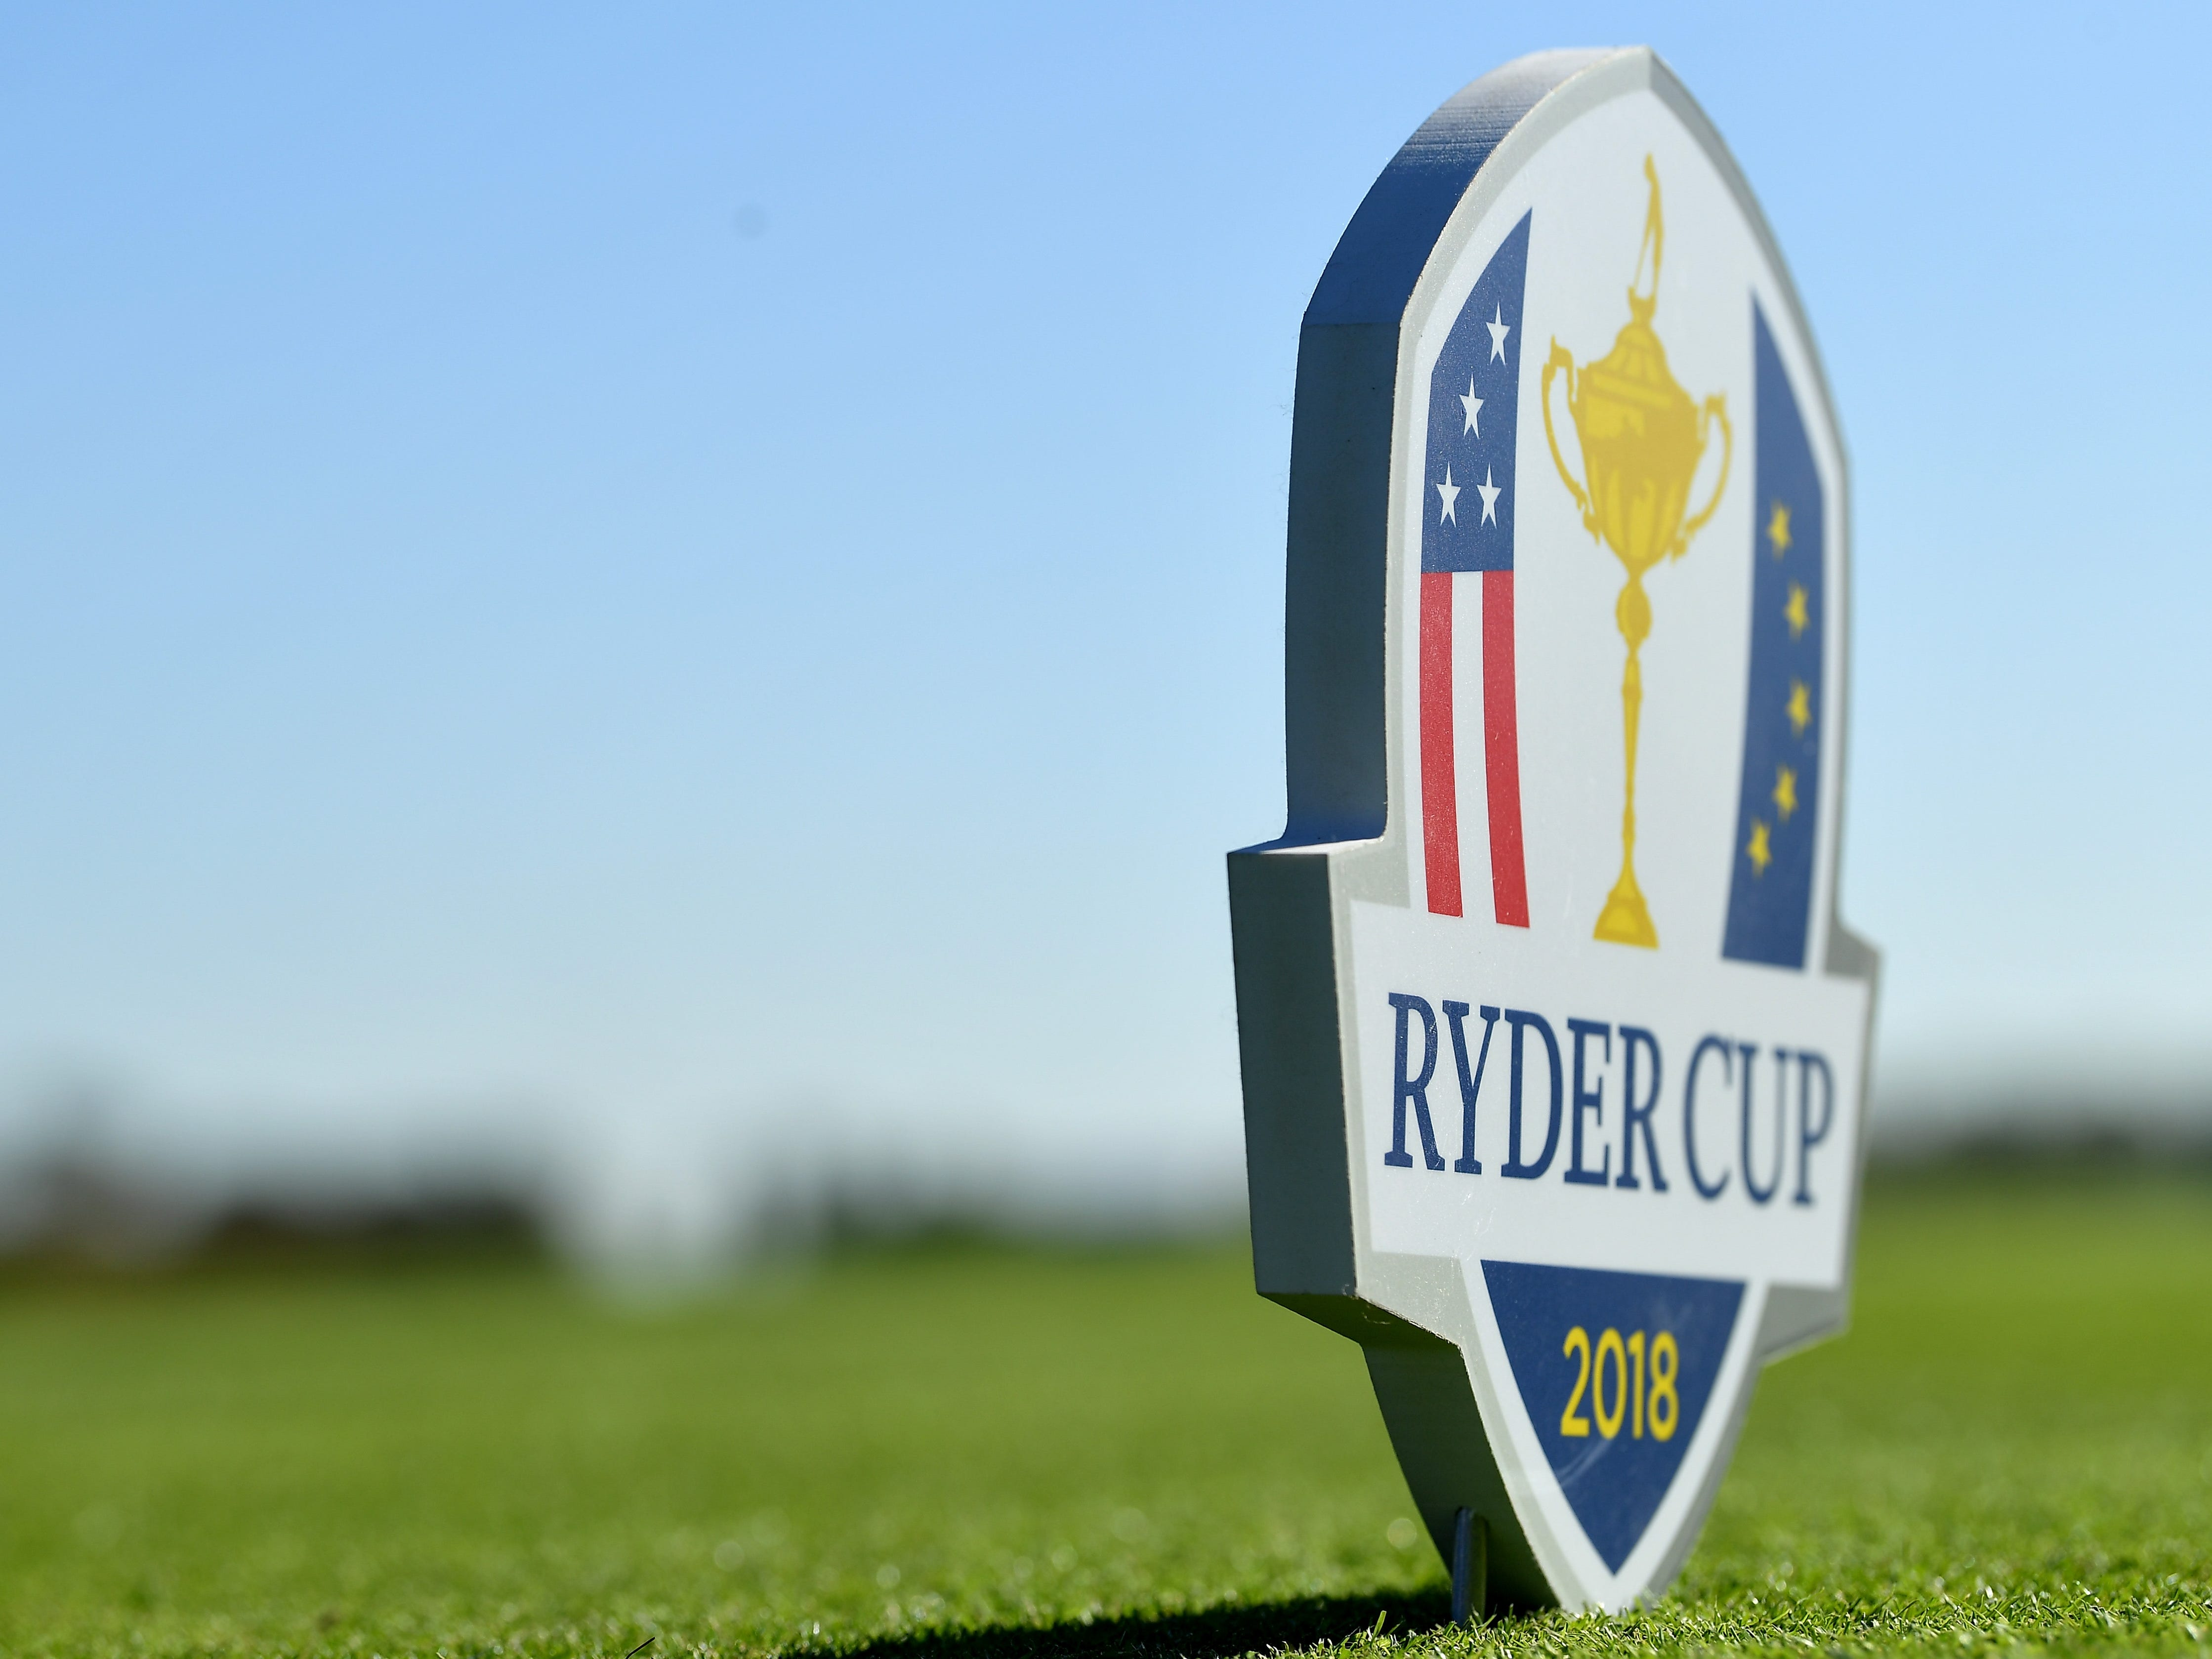 A tee marker set up ahead of the 2018 Ryder Cup.